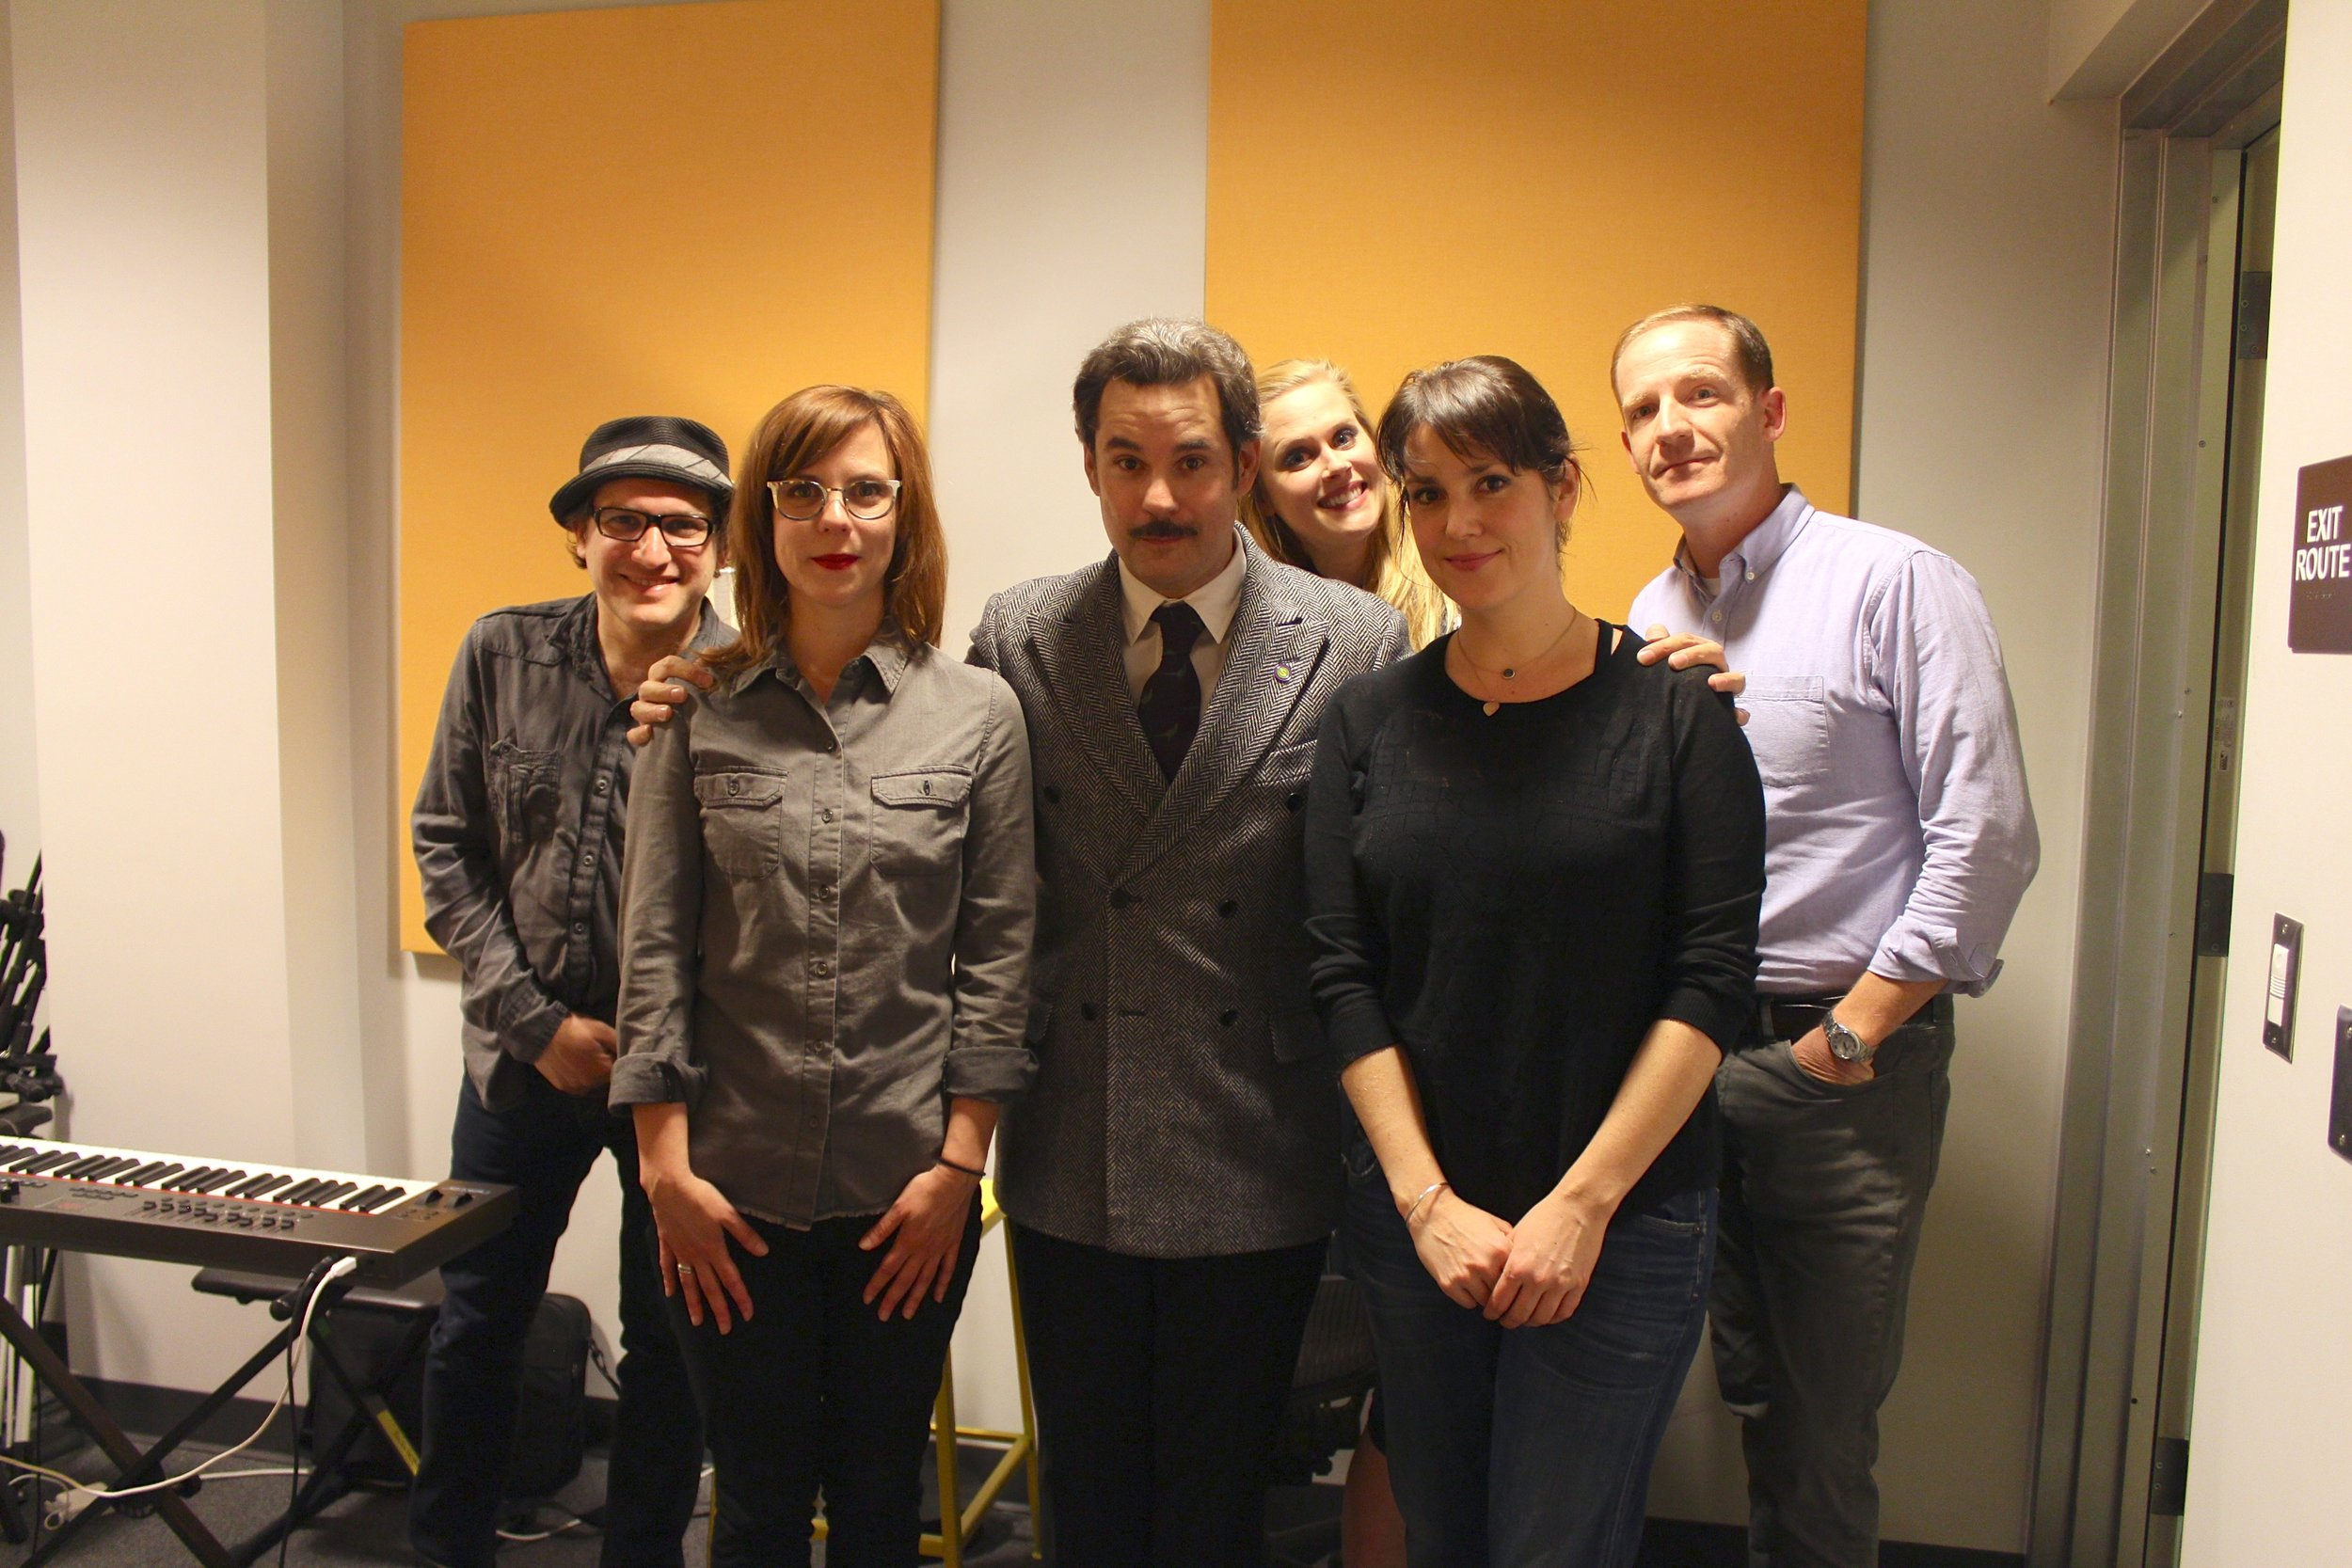 """Spontaneanation with Paul F. Tompkins#4 Savannah, Georgia(April 20th, 2015) - Paul F. Tompkins invites all you wondrous humans to Spontaneanation, and this week he is joined by special guest Melanie Lynskey of HBO's Togetherness! They chat about dropping out of college, what New Zealand looks like from space, and being humiliated in school because of the Australian song """"Tie Me Kangaroo Down, Sport."""" Paul is then joined by improvisers Sarah Burns, Marc Evan Jackson, and Janet Varney,to improvise a story set in Savannah, Georgia. As always, the terrific Eban Schletter scores it all on piano. Celebrate 4/20 by traveling to beautiful Savannah, Georgia and beyond with us!"""